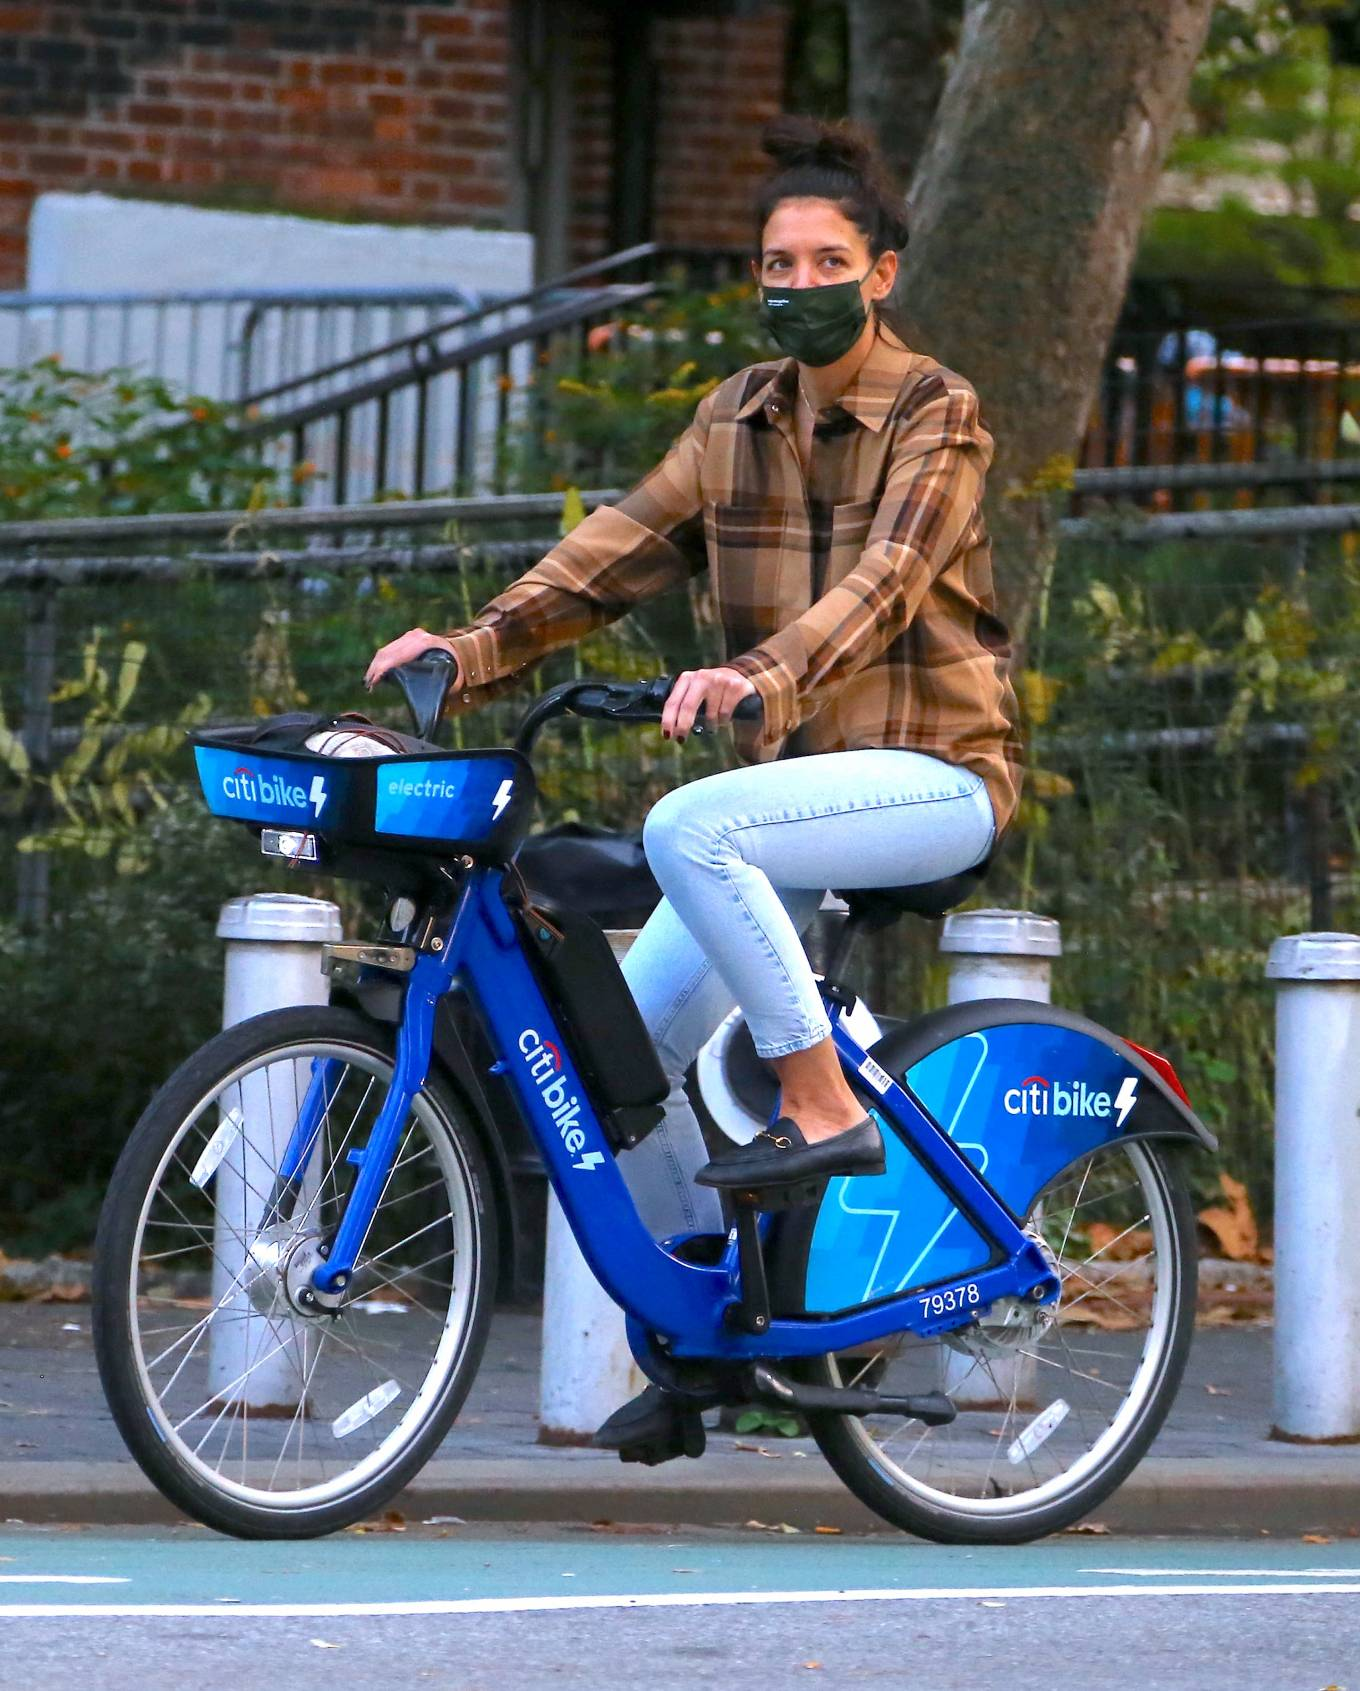 Katie Holmes - Seen while riding electric Citi Bike in Soho